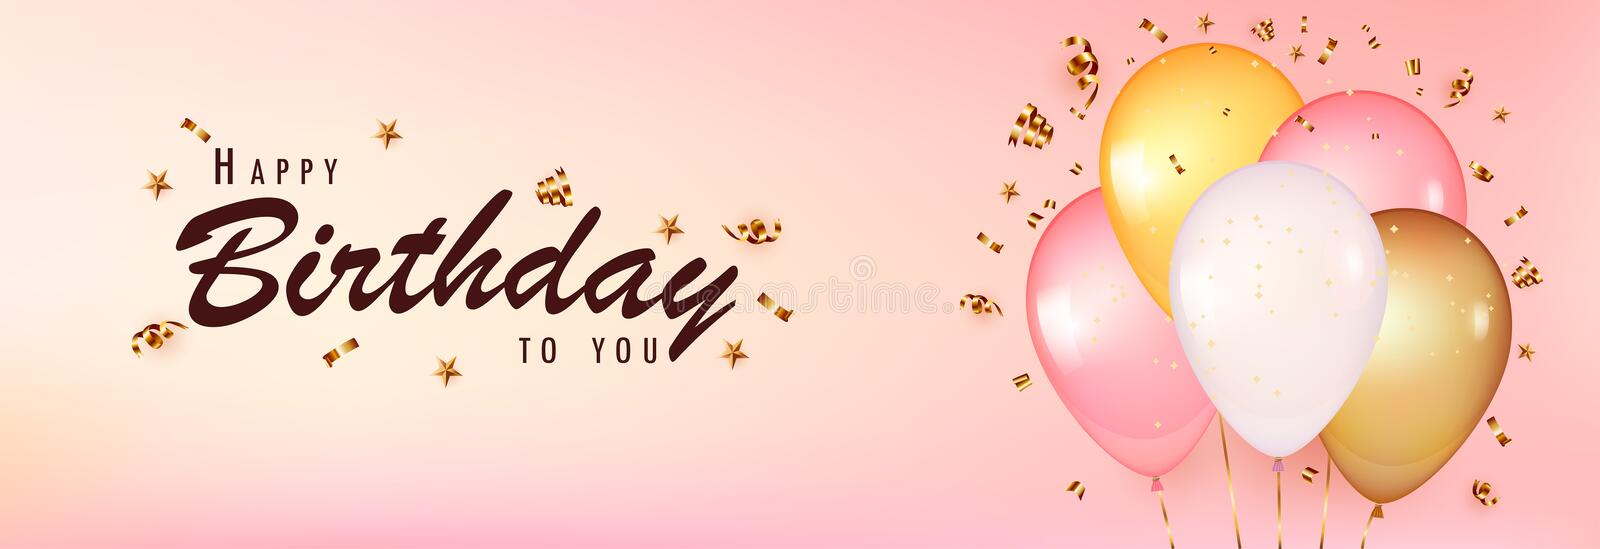 Celebrate birthday template. Pink Background with realistic balloons with gold confetti royalty free illustration